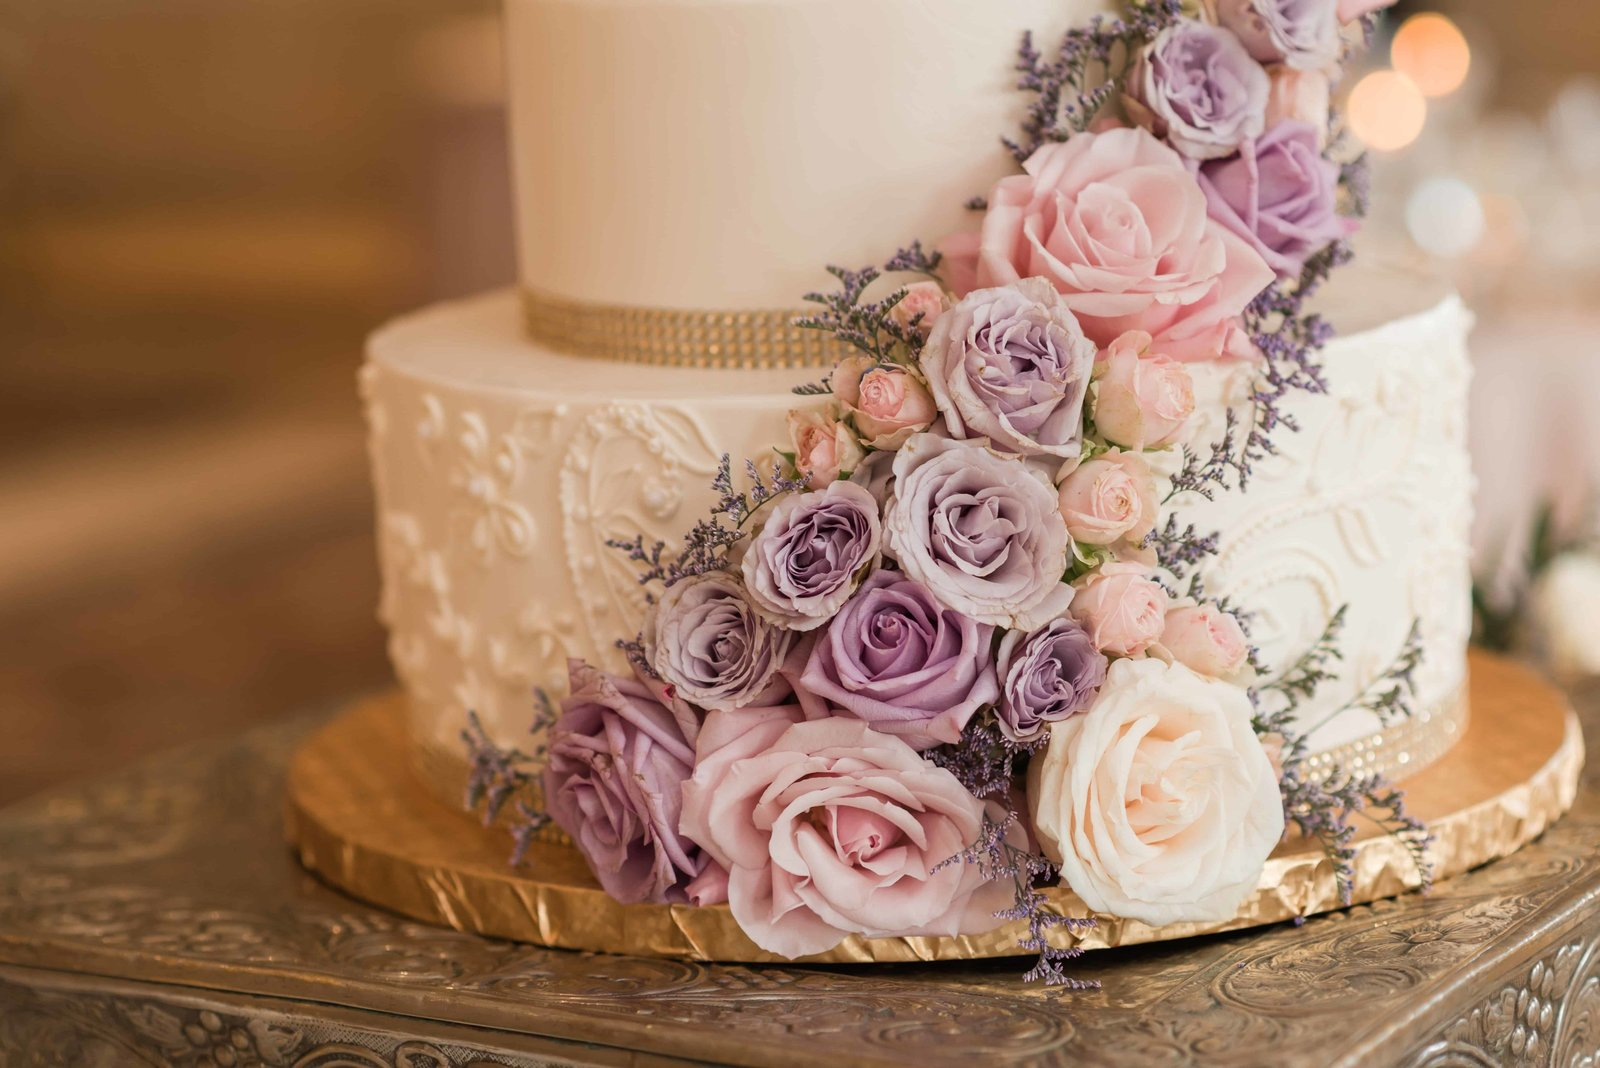 Elegant wedding cake with Pink and Purple flowers.